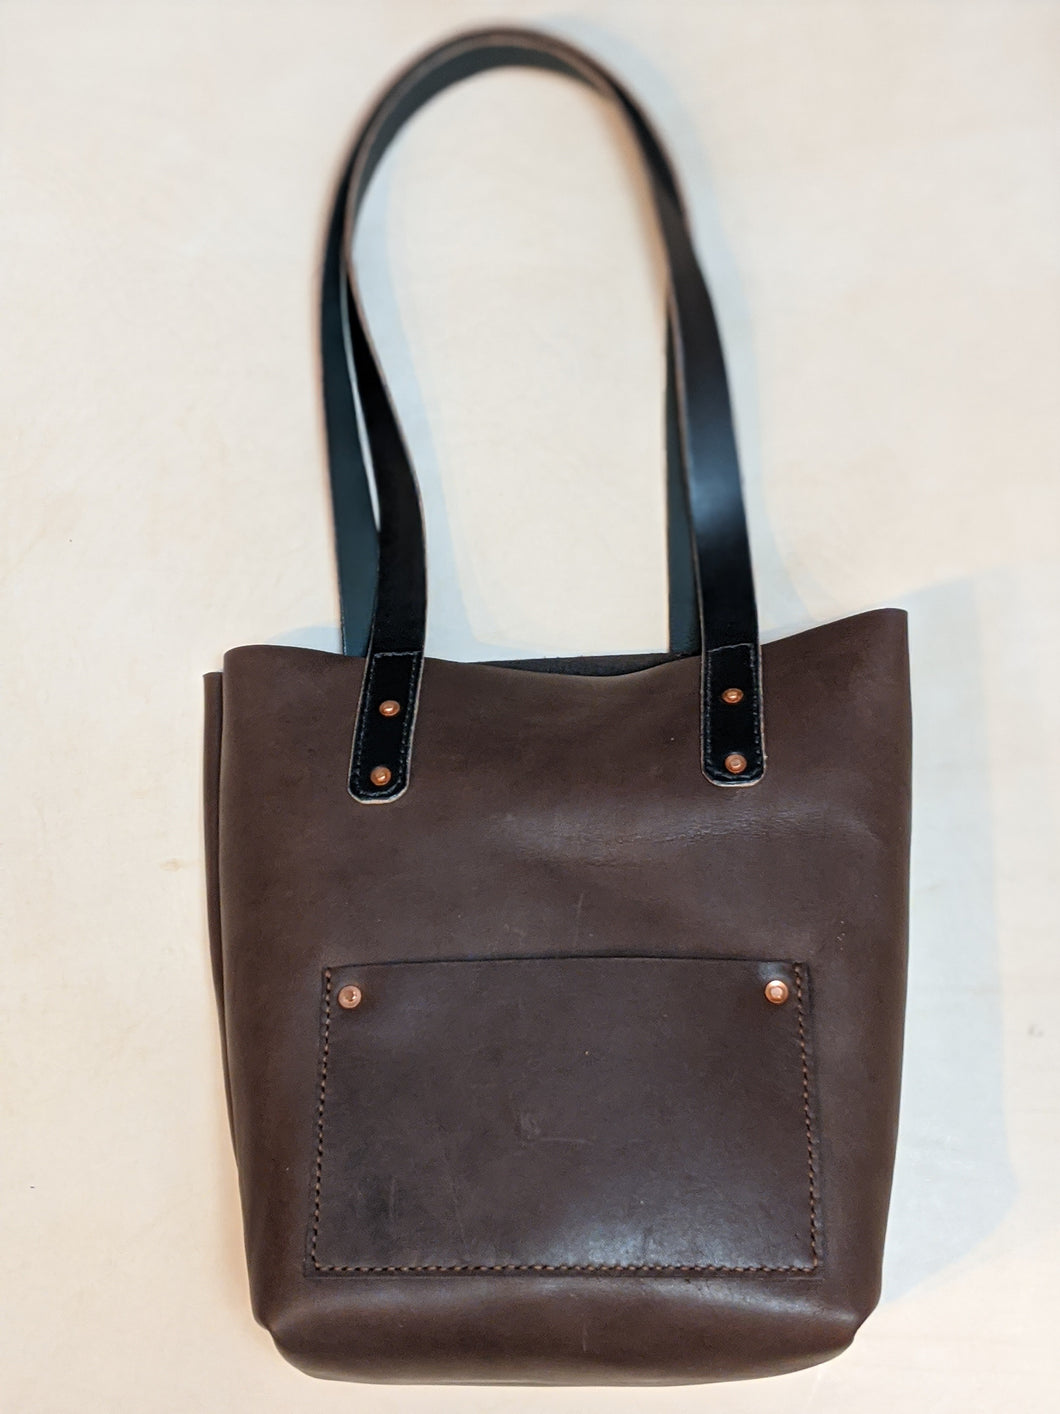 Tote Bag - Chocolate Brown